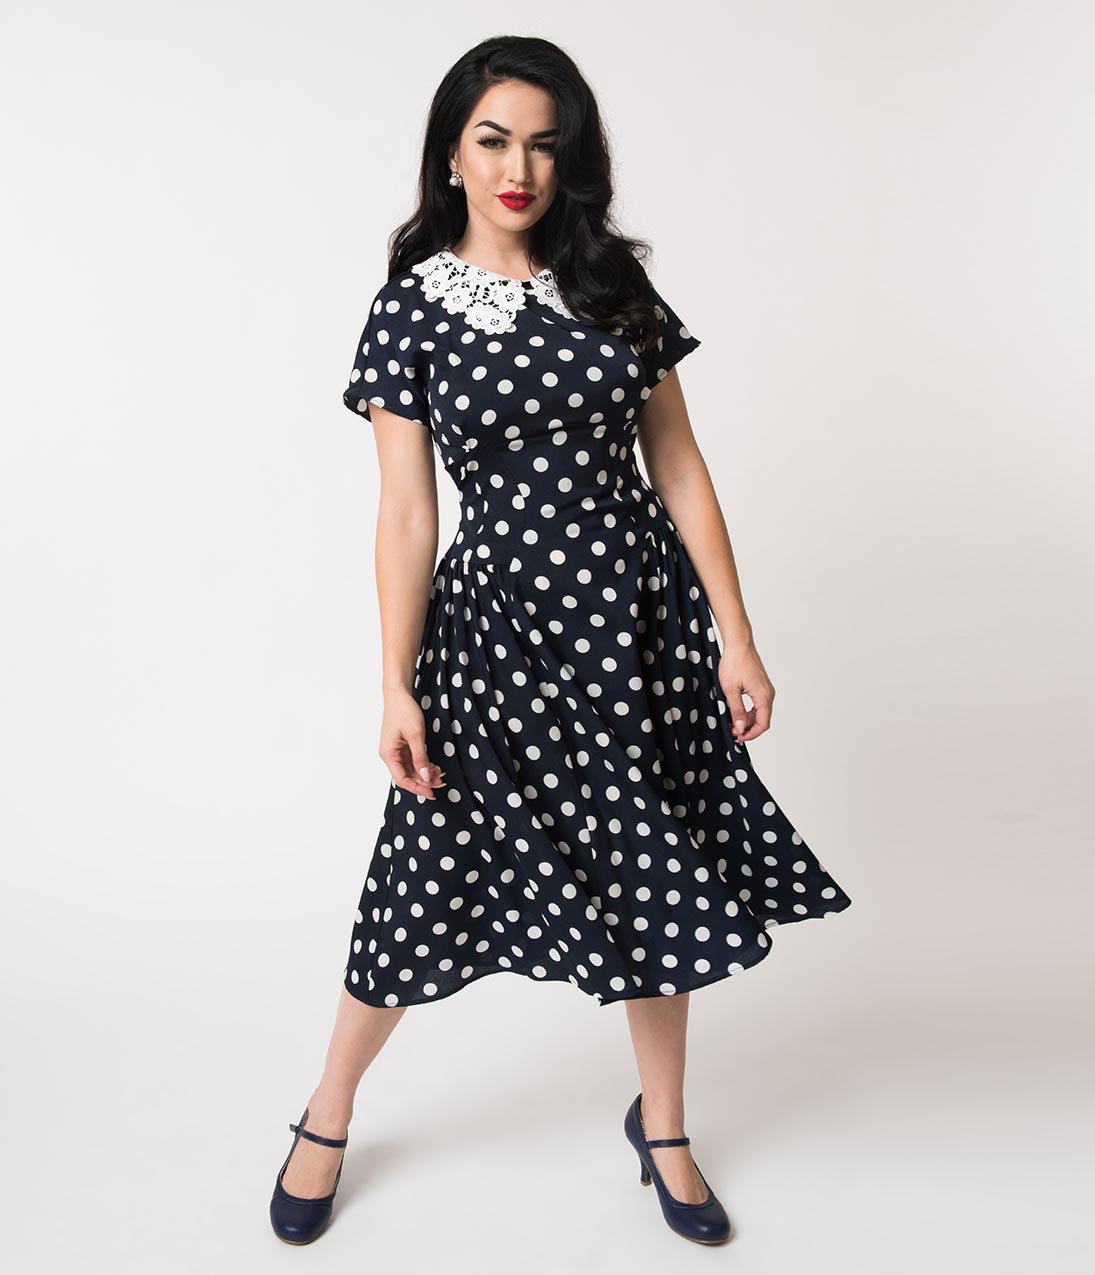 502fa47e1b2 50 Vintage Inspired Clothing Stores Unique Vintage 1940S Navy White Polka  Dot Lace Collar Margie Dress